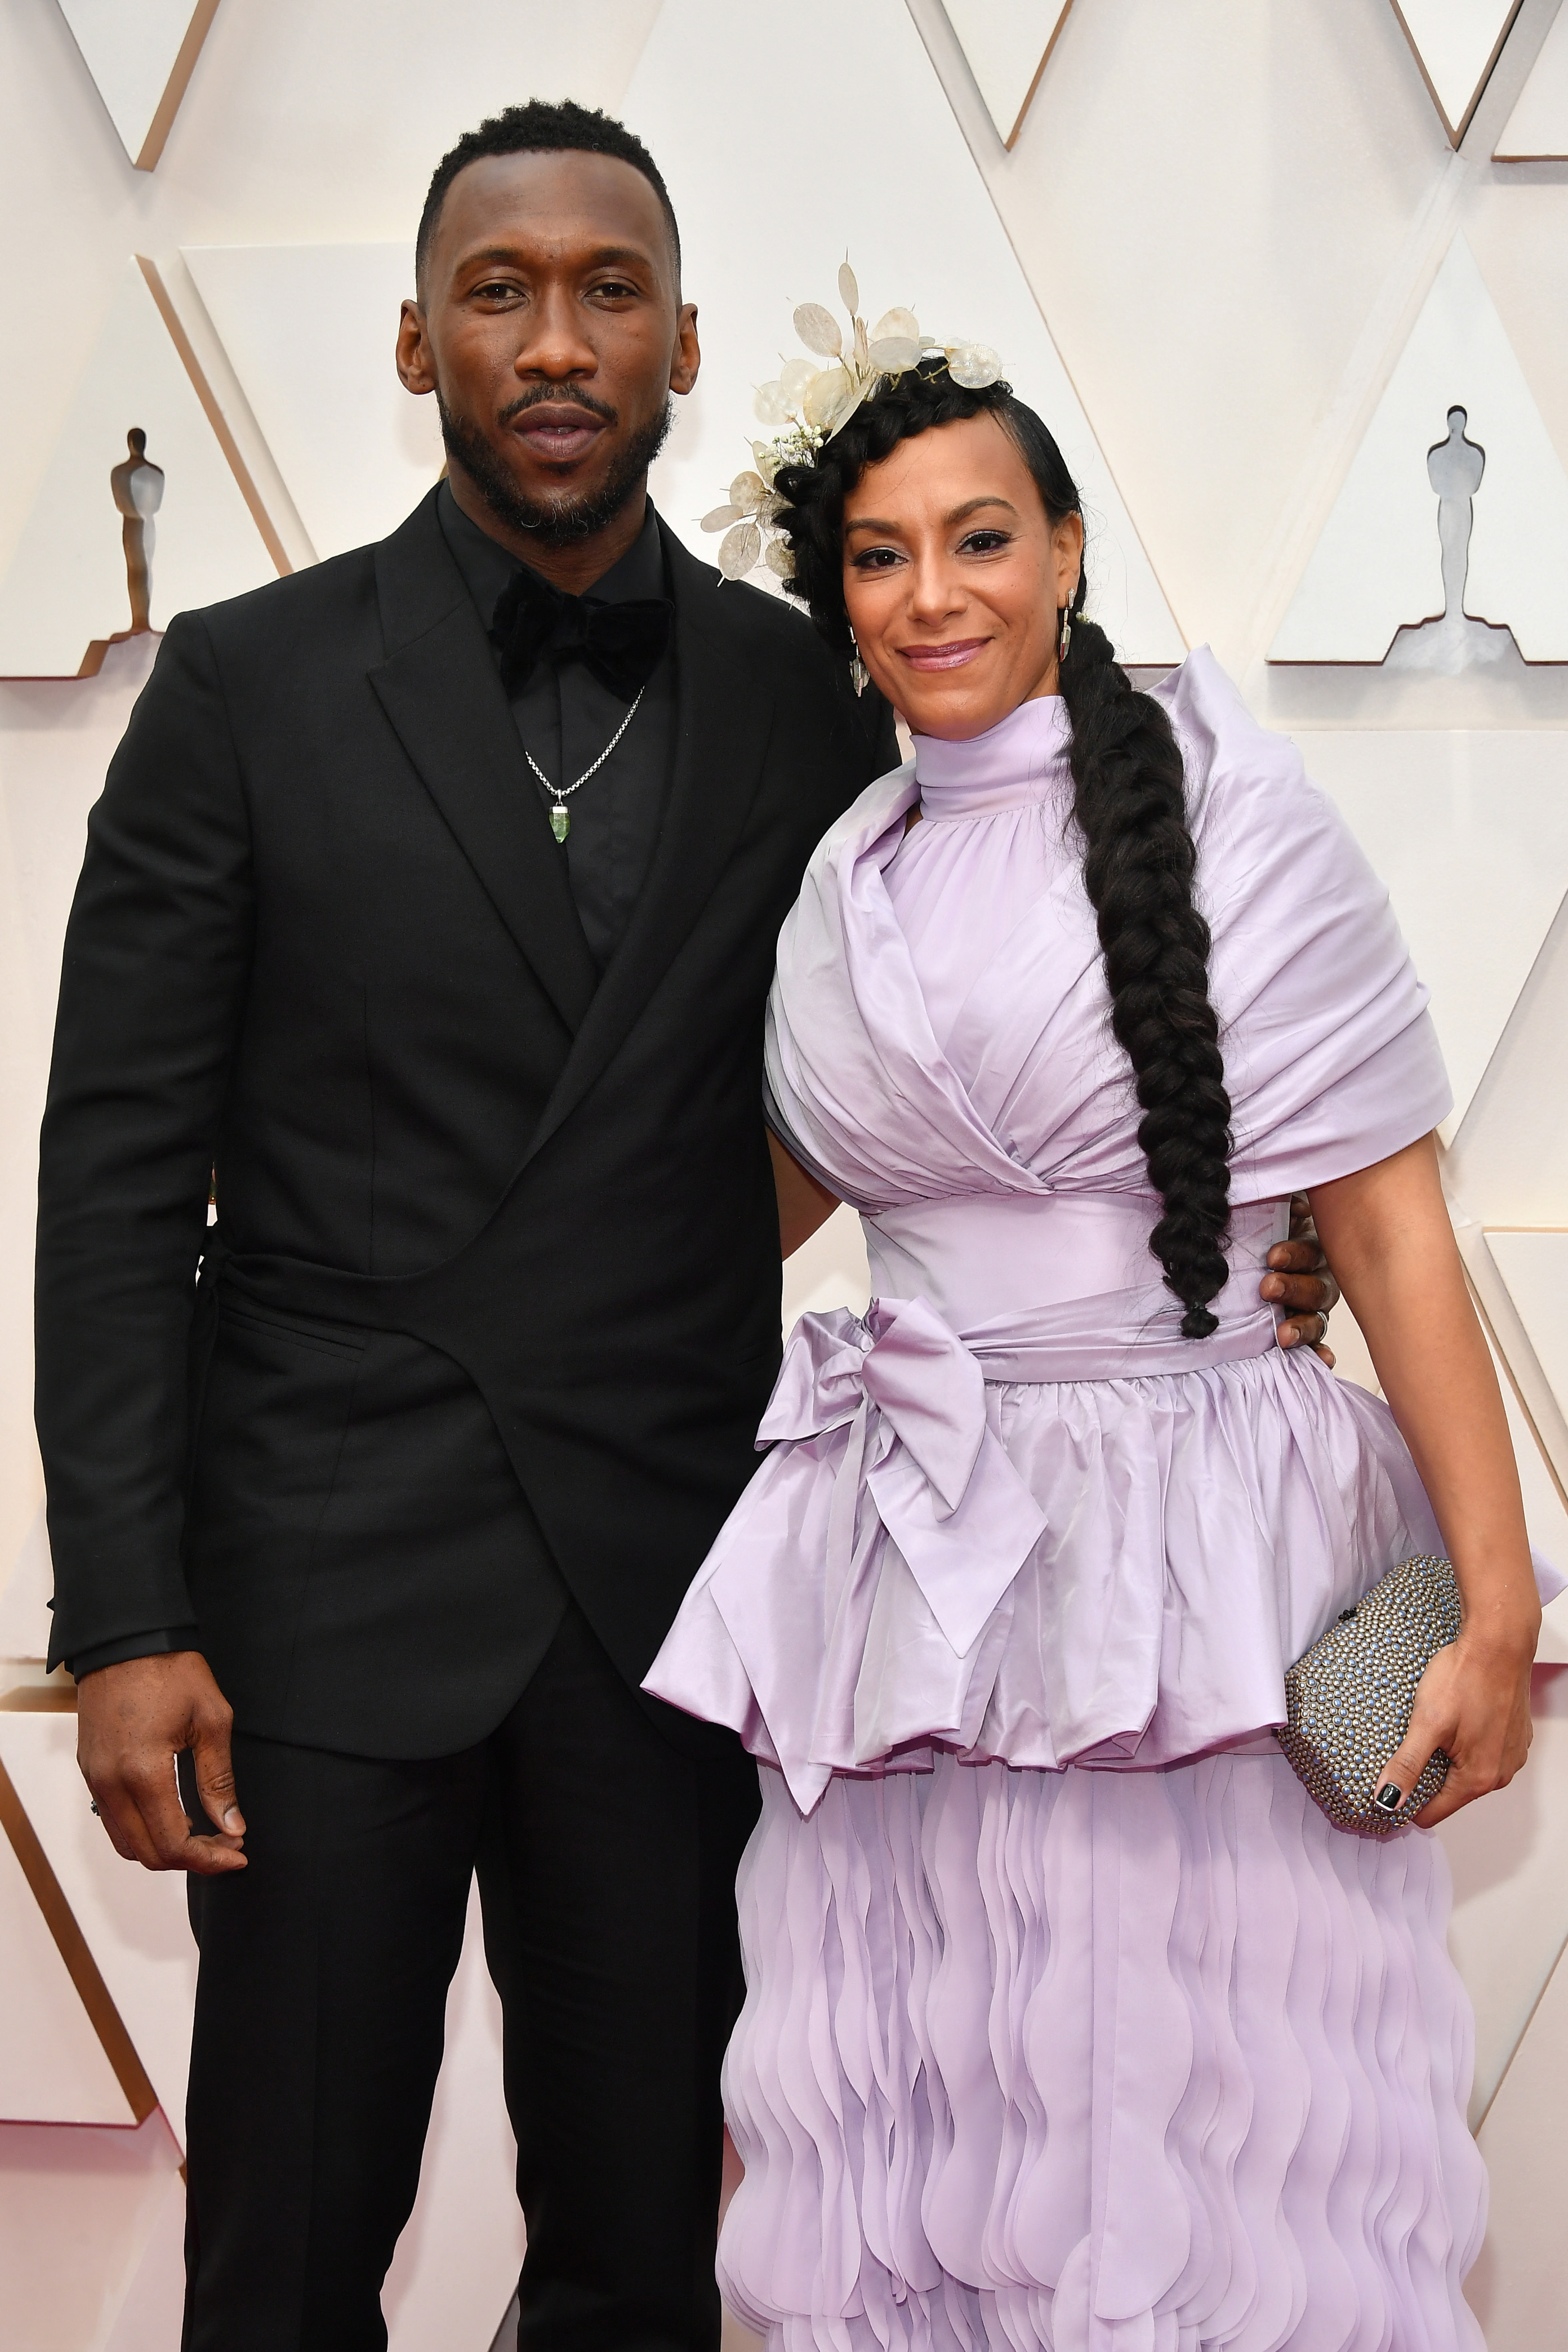 HOLLYWOOD, CALIFORNIA - FEBRUARY 09: (L-R) Mahershala Ali and Amatus Sami-Karim attend the 92nd Annual Academy Awards at Hollywood and Highland on February 09, 2020 in Hollywood, California. (Photo by Amy Sussman/Getty Images)